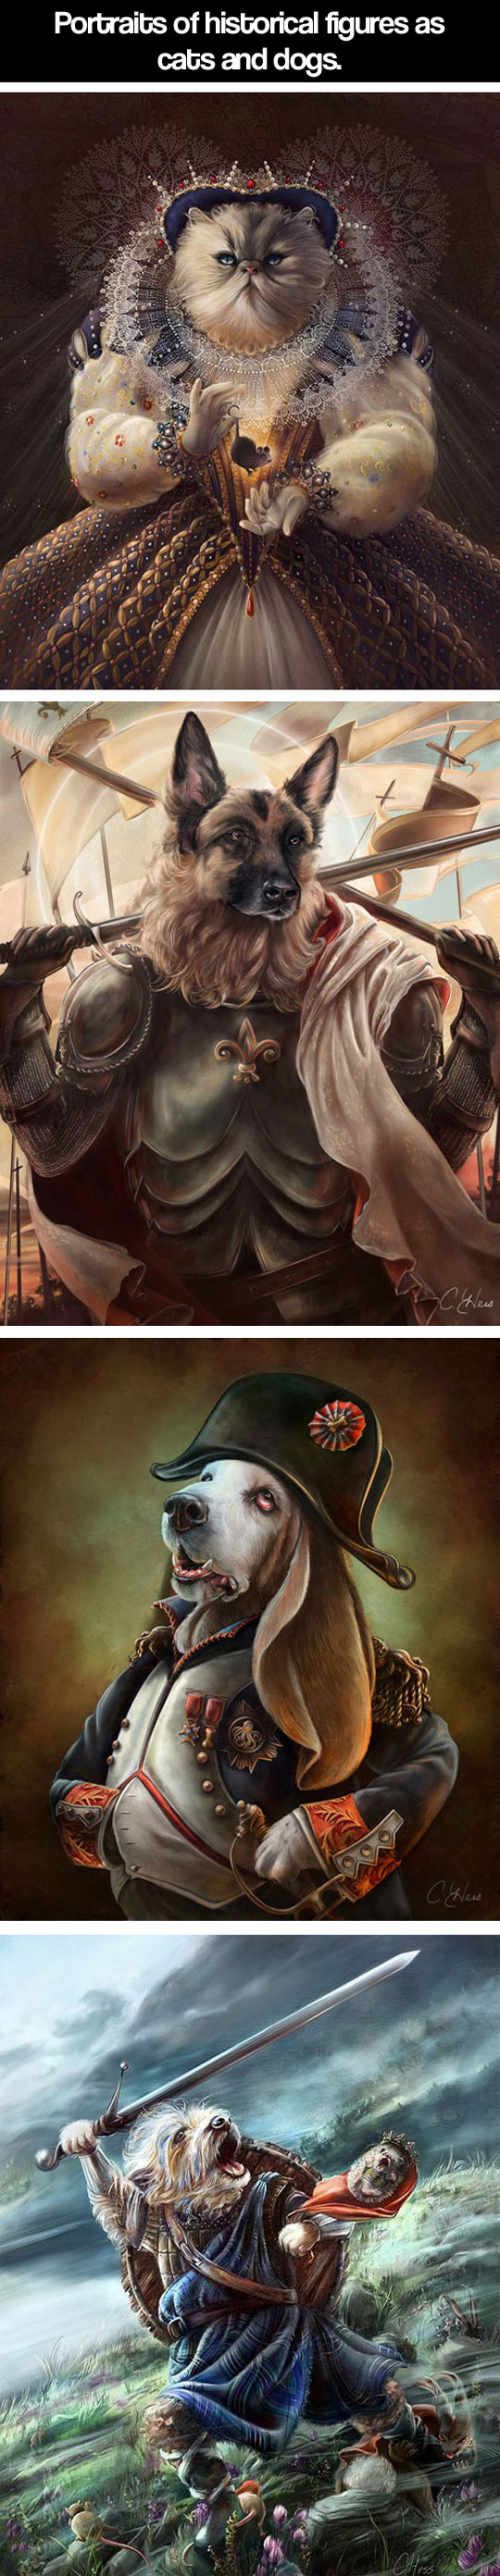 funny-cats-dogs-historical-figures-portraits